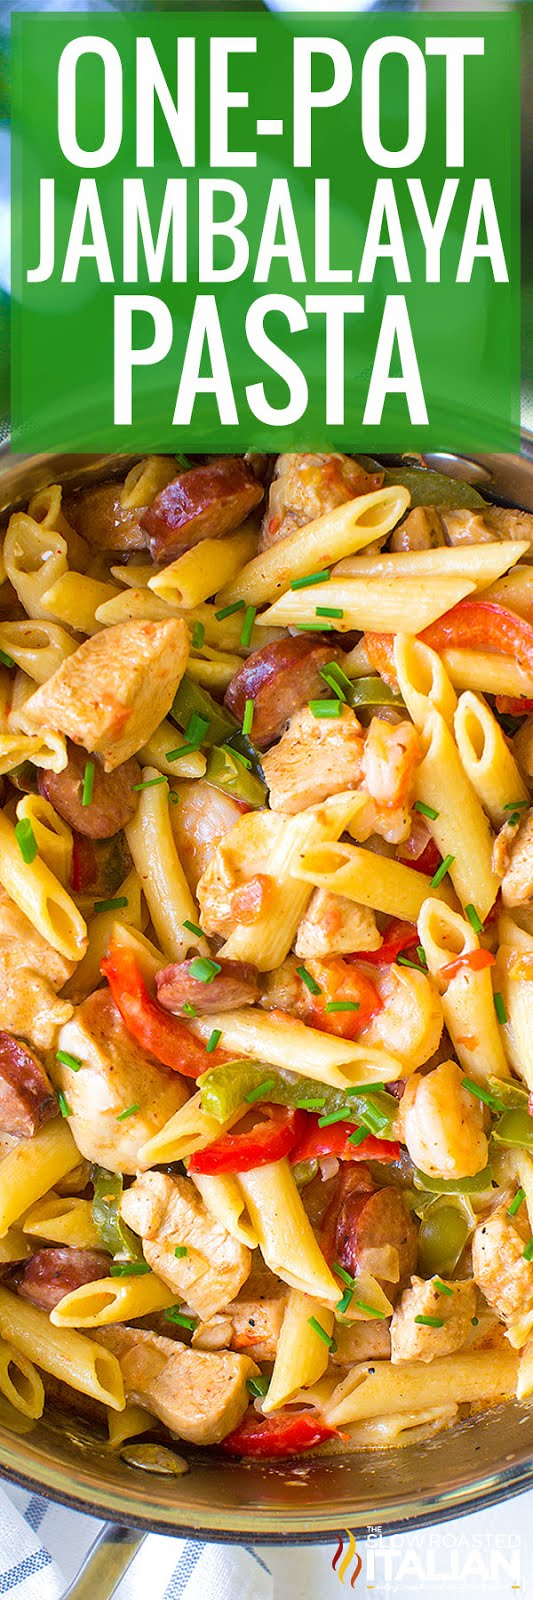 One Pot Jambalaya Pasta With Video